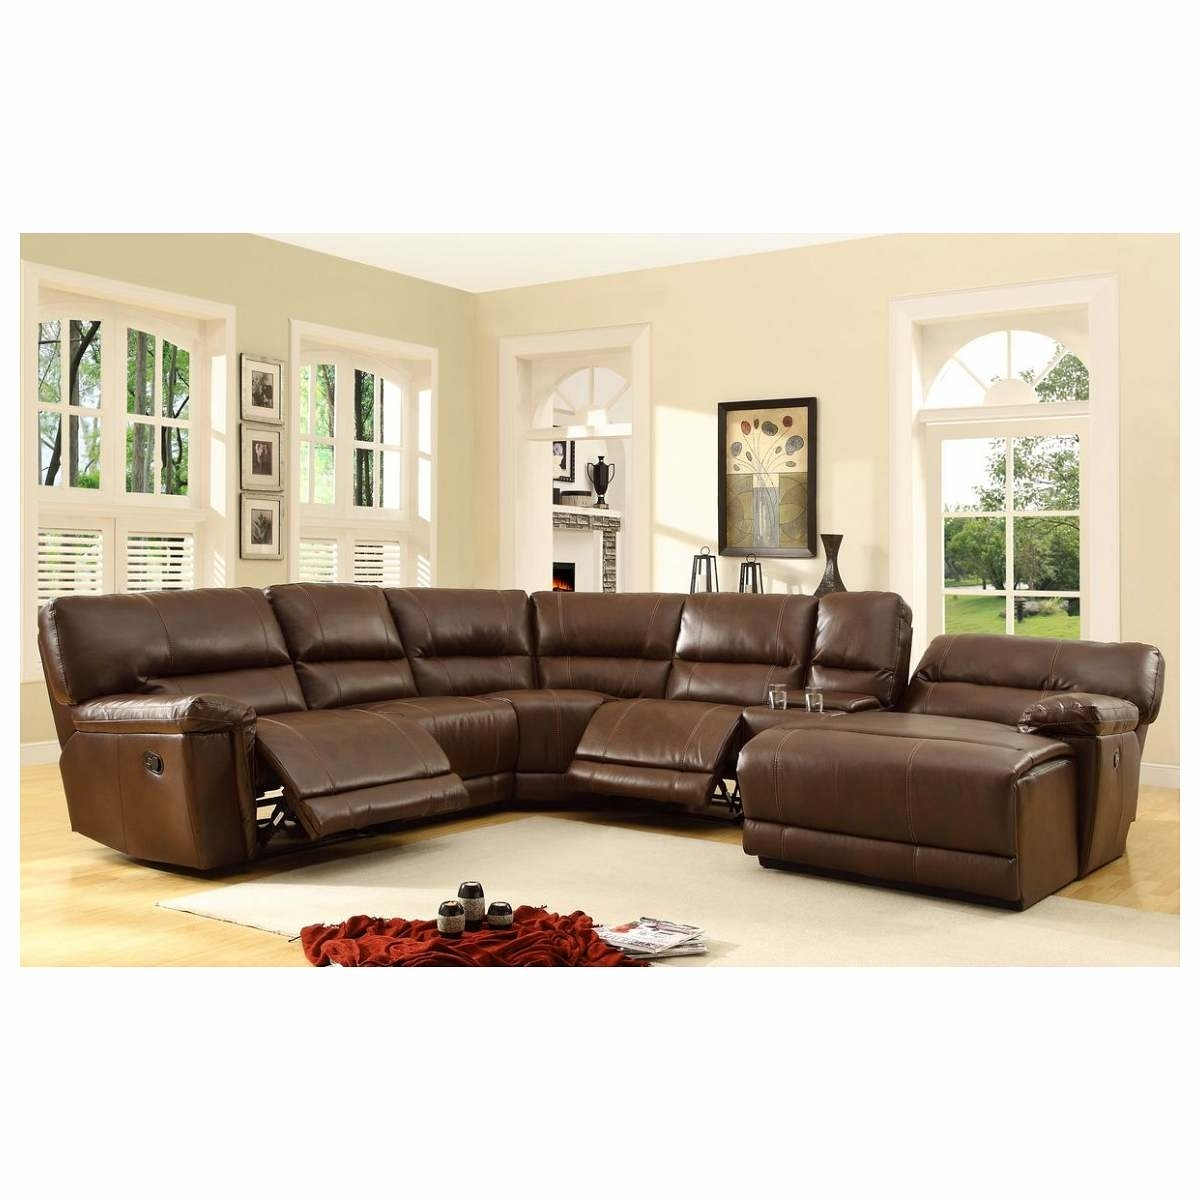 6 Pc Blythe Collection Brown Bonded Leather Match Upholstered intended for Tampa Fl Sectional Sofas